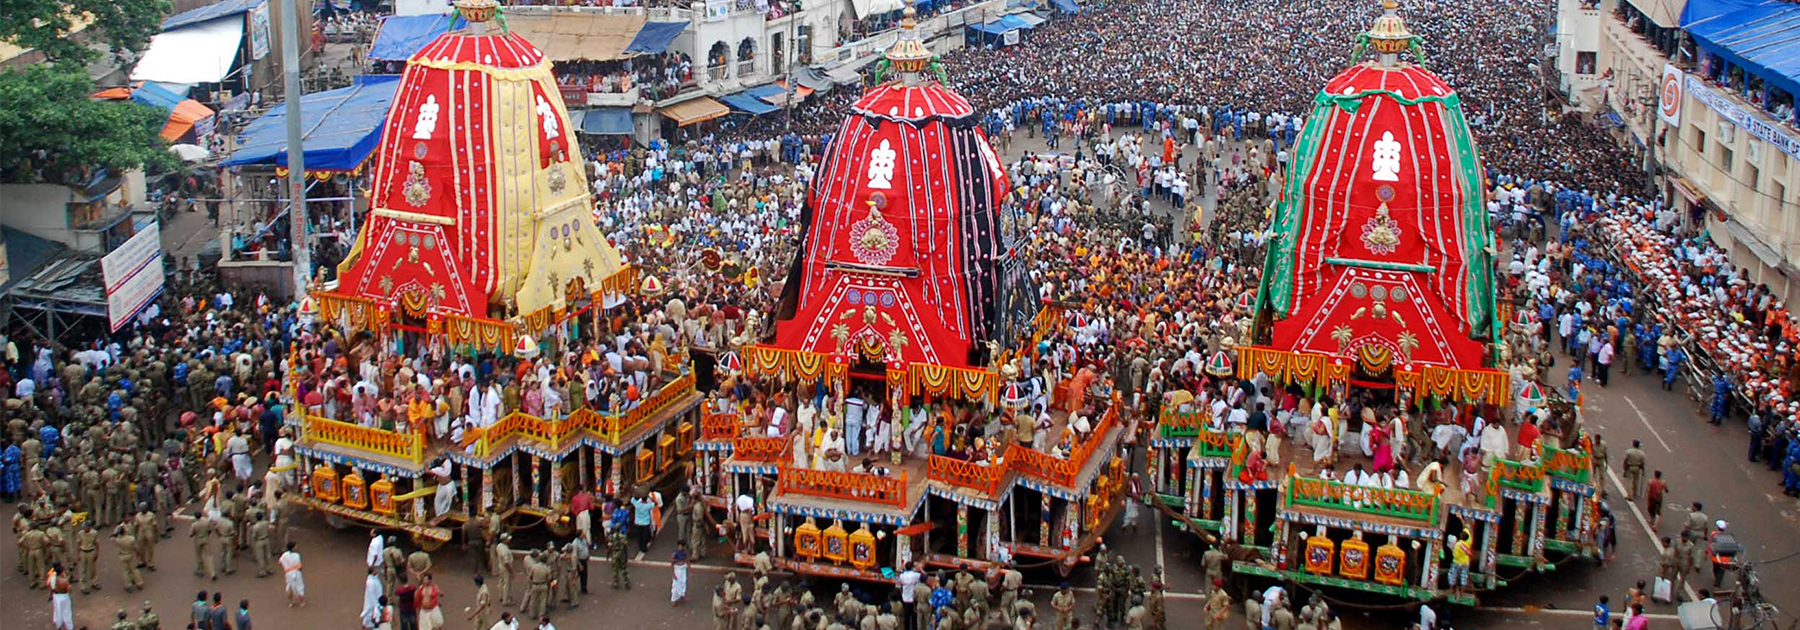 Hindu devotees gather as three giant chariots are pulled during the Rath Yatra of Lord Jagannath in Puri. (STR/AFP/GettyImages)